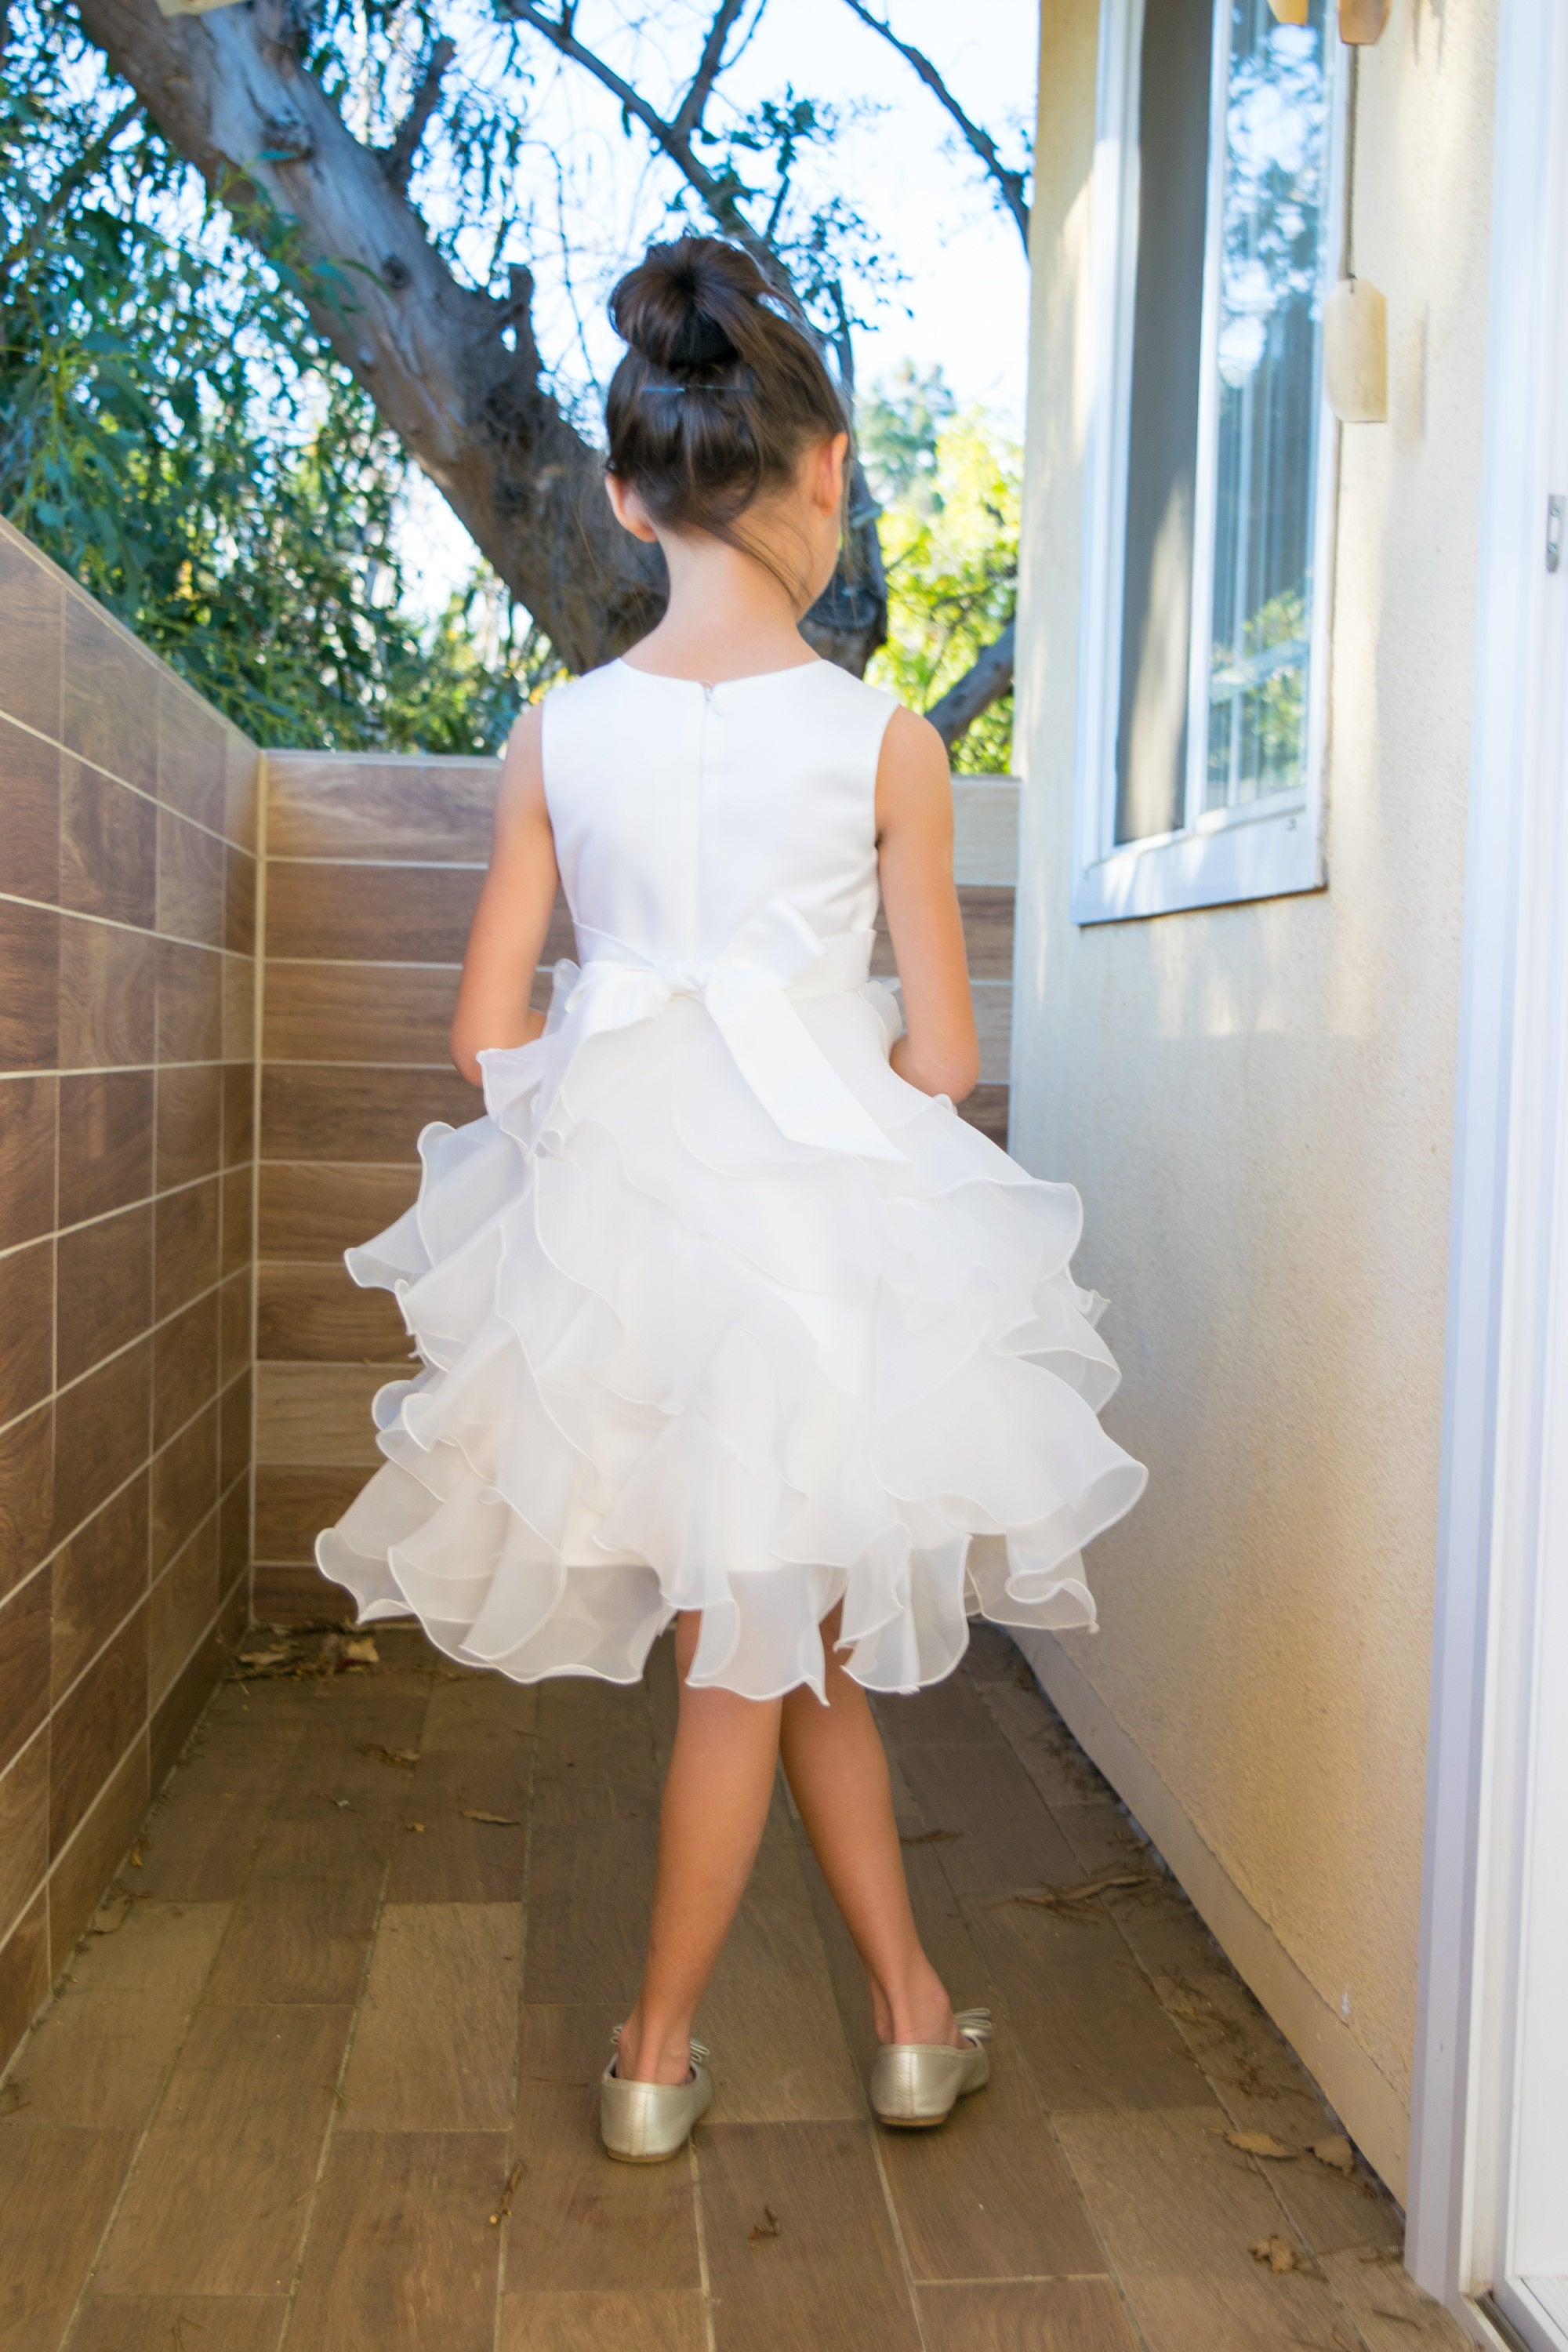 b7ec7929926 Girl Premium White Ivory Satin Organza Ruffles Dress Gown